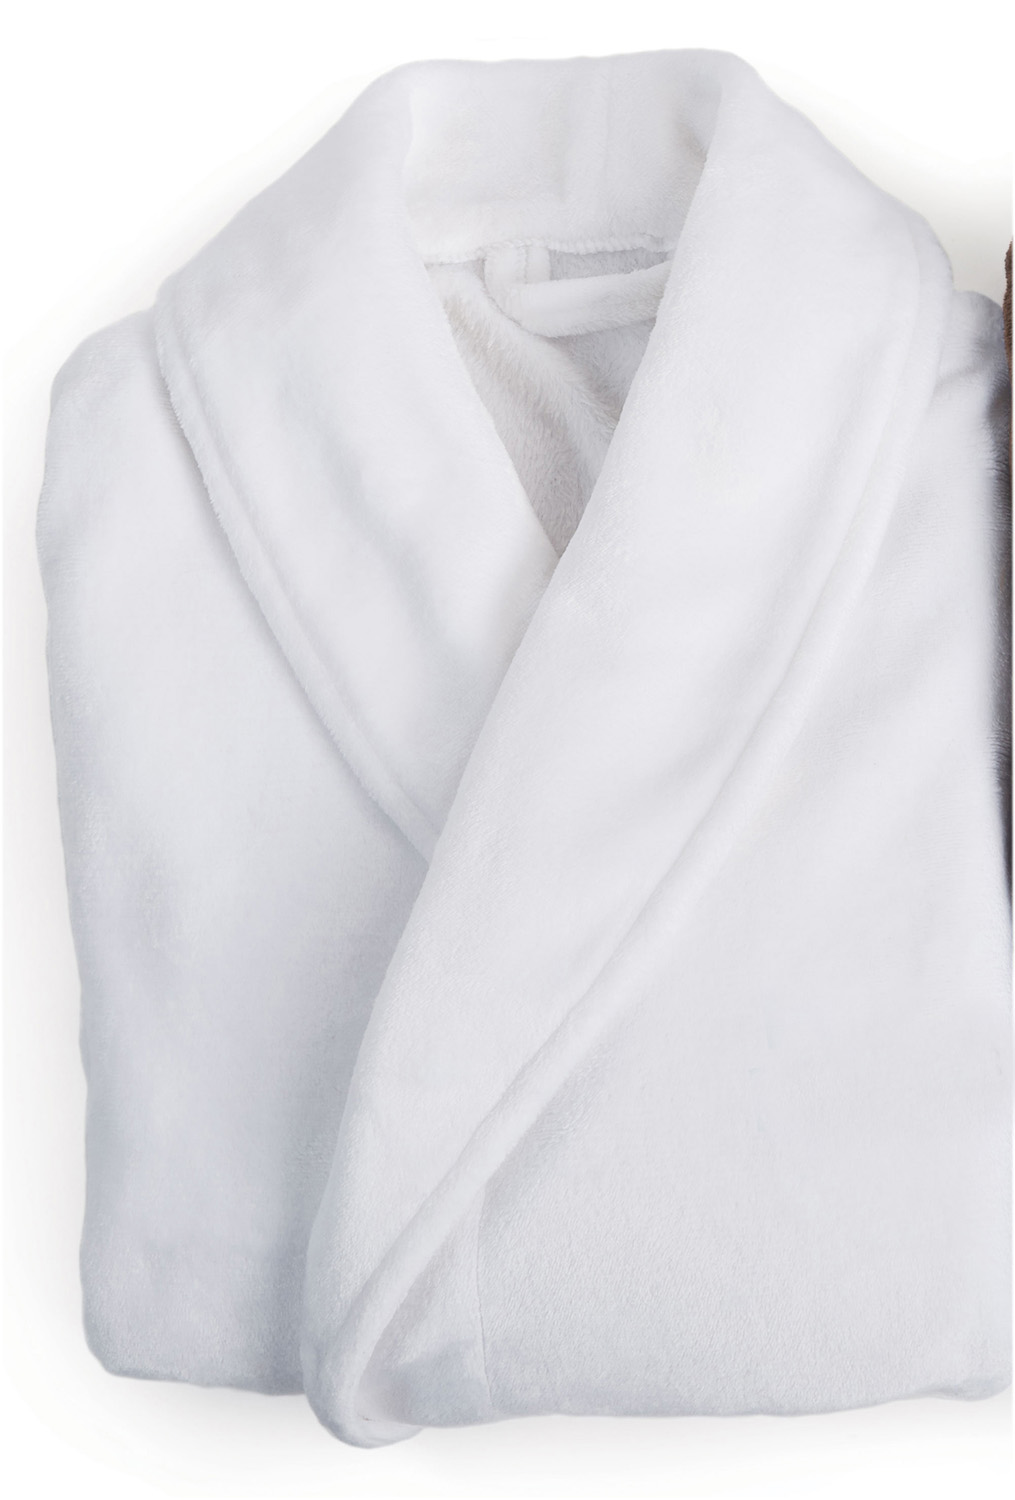 Plush Lounge Robe - White (3)